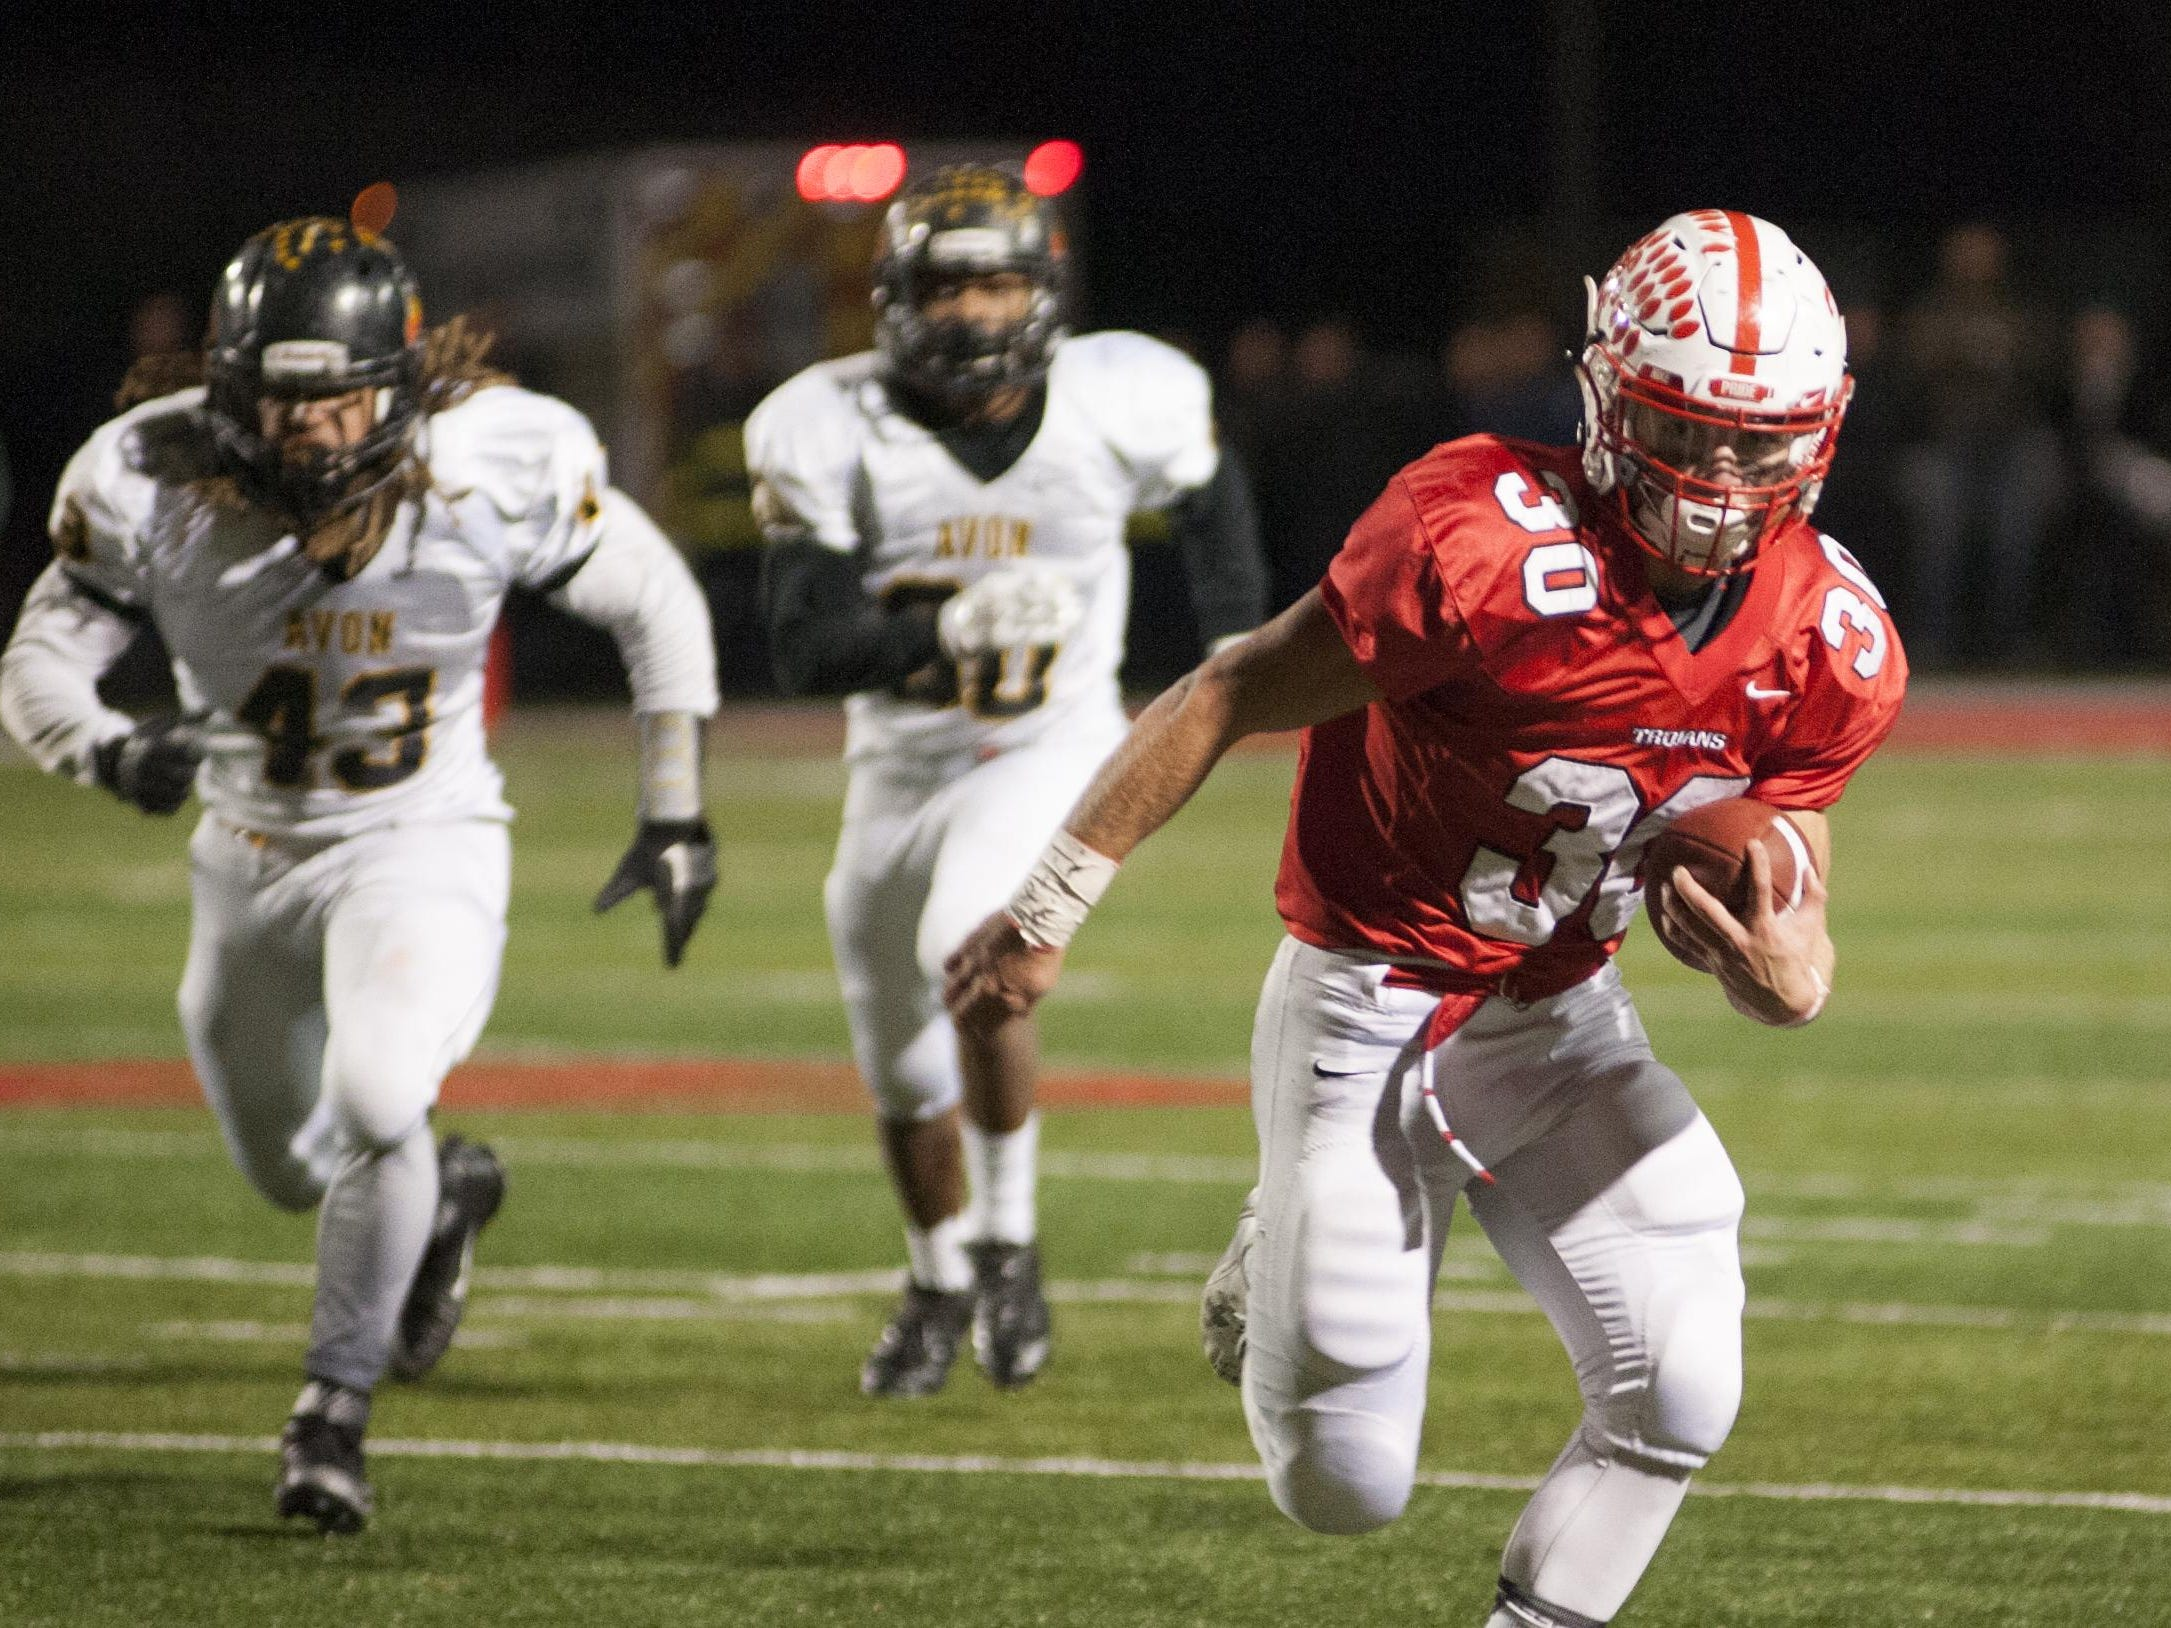 Center Grove running back Titus McCoy (30) advances past Avon players during the Class 6A semistate playoff game Nov. 13, 2015, in Greenwood.